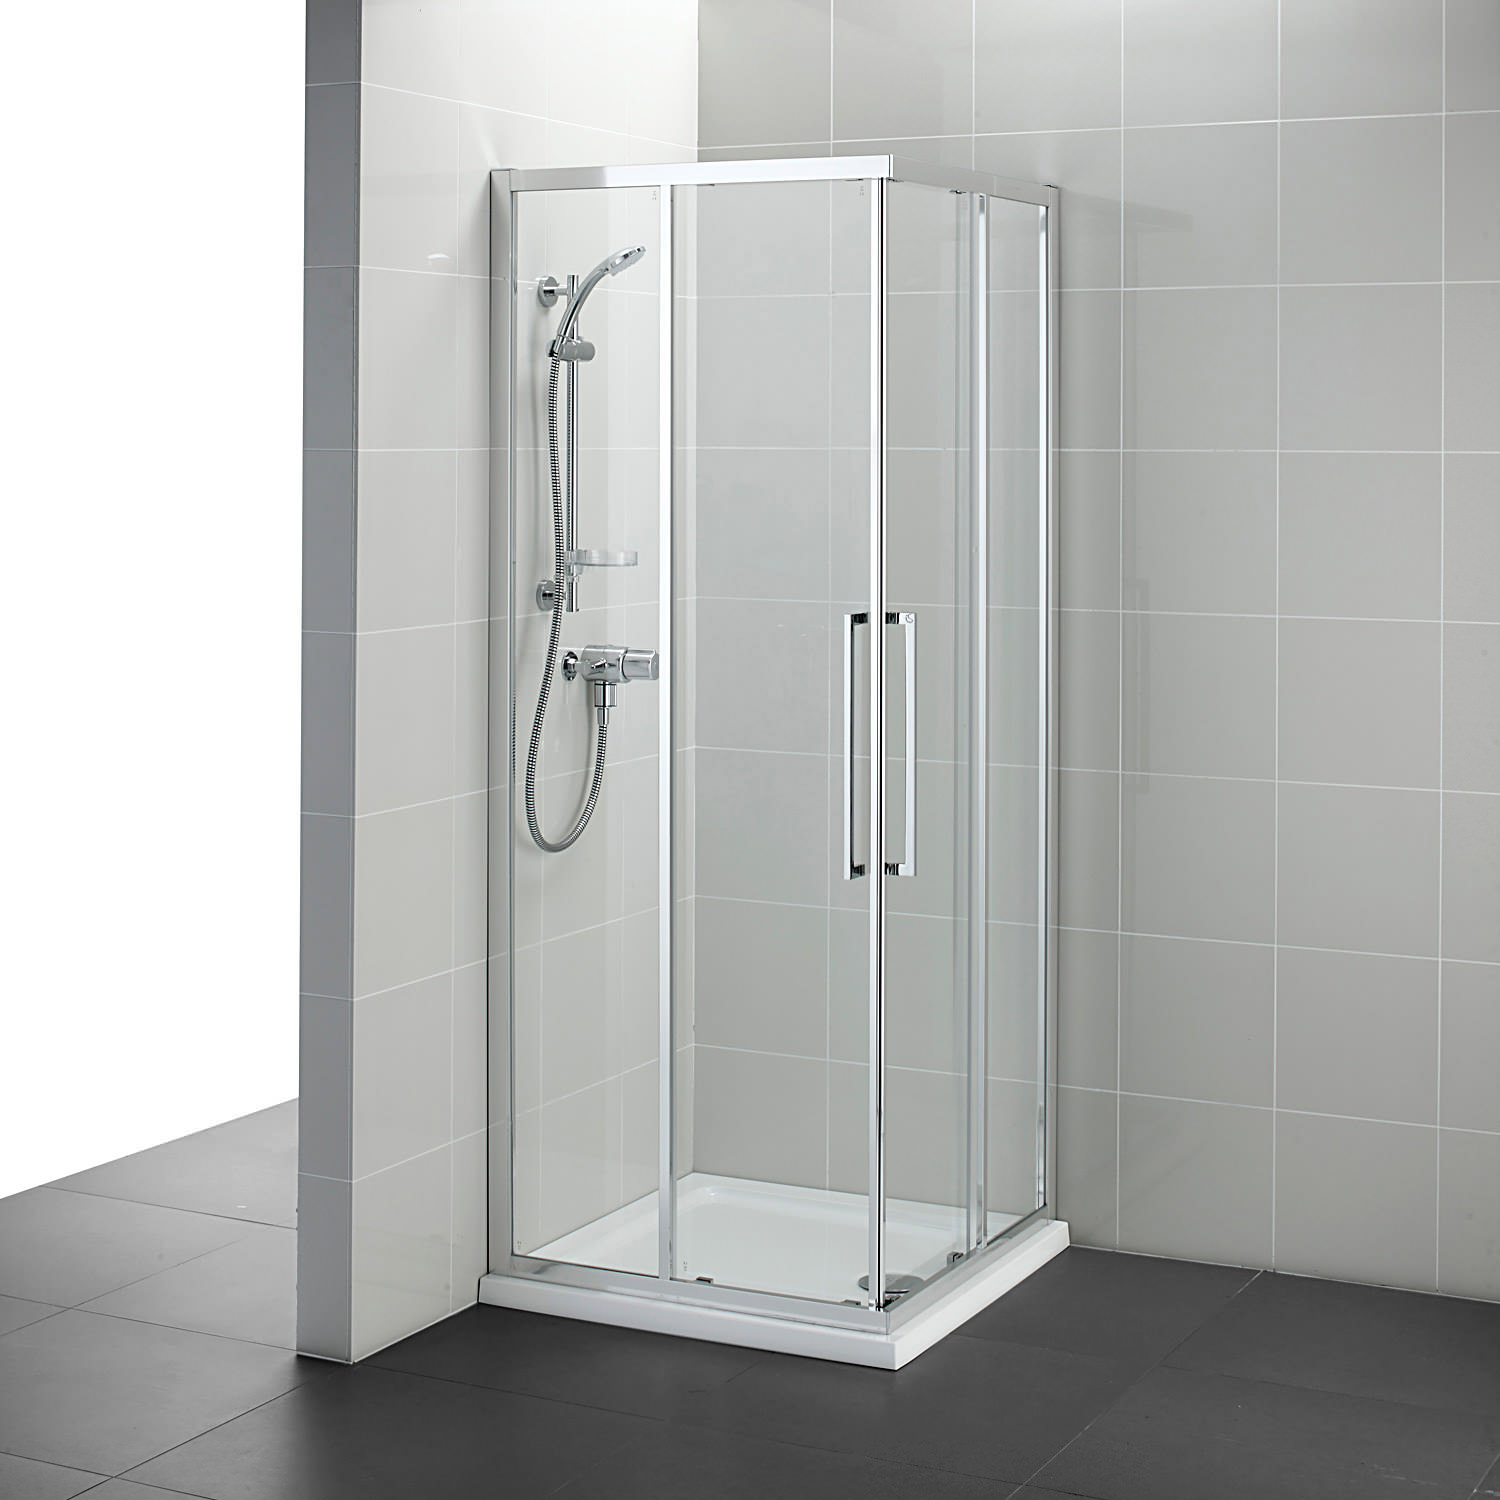 Ideal Standard Kubo 900 x 900mm Corner Entry Shower Enclosure